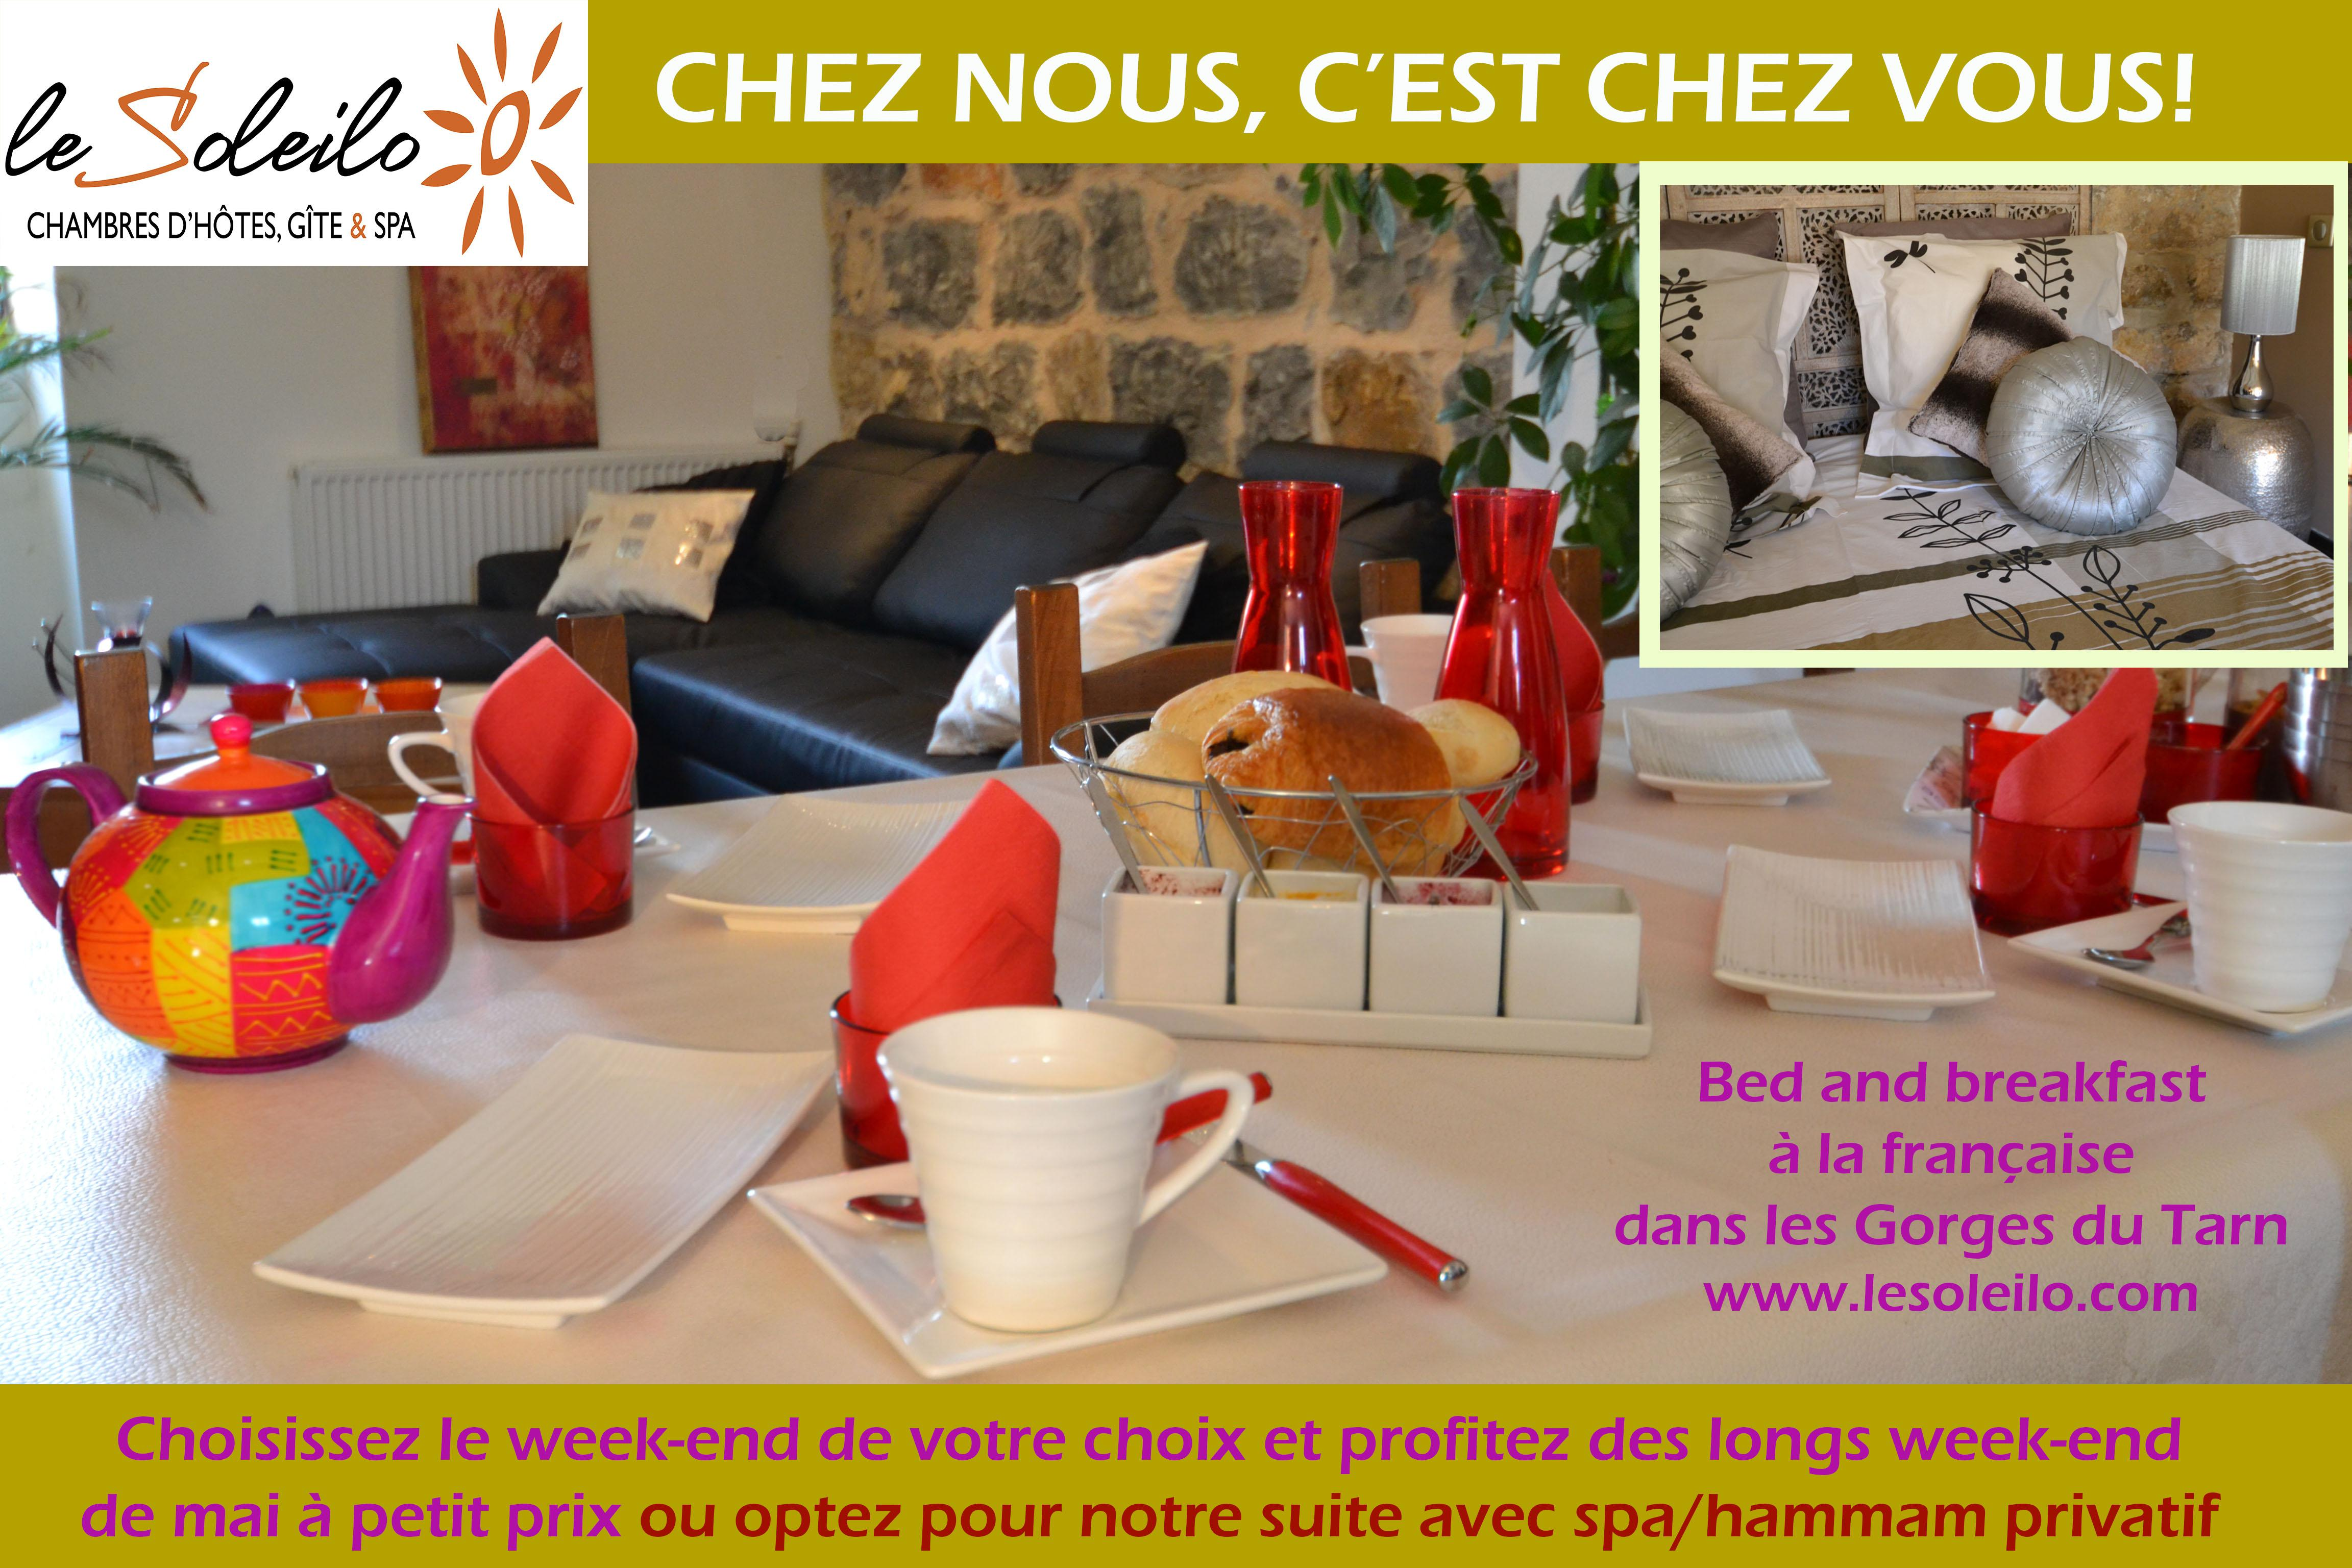 May weekend bed and breakfast in French for rent in the heart of